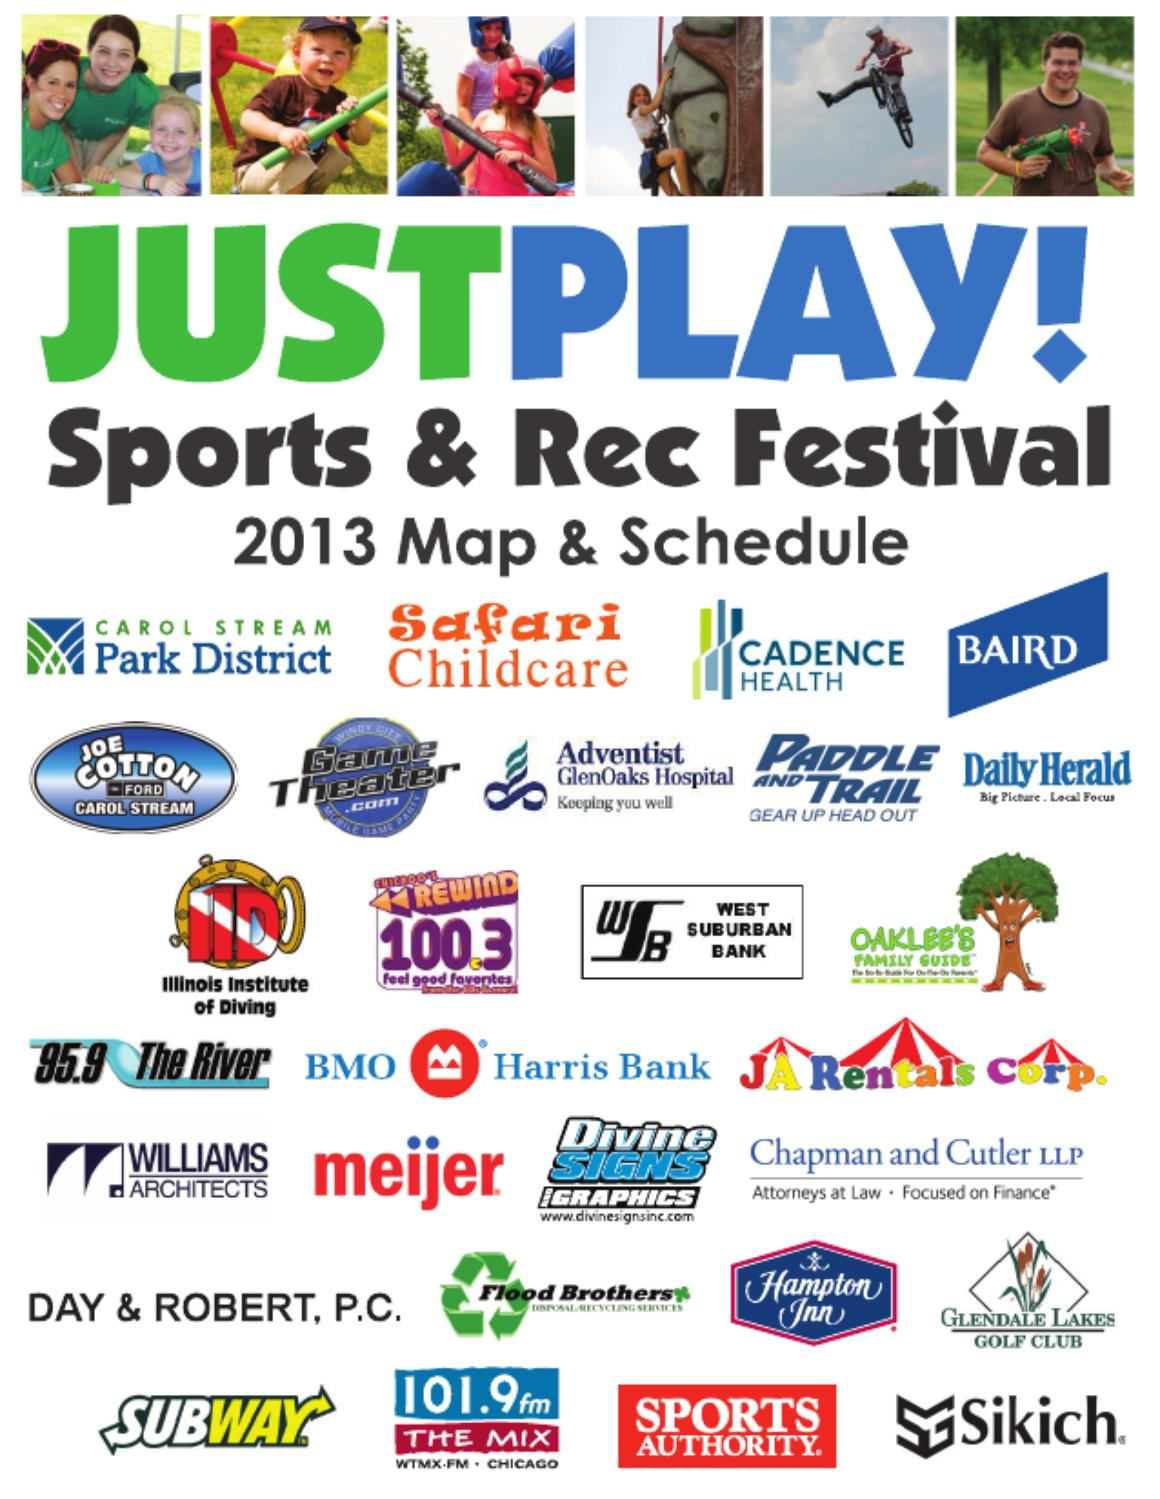 JustPlay! 2013 guide by Carol Stream Park District - issuu